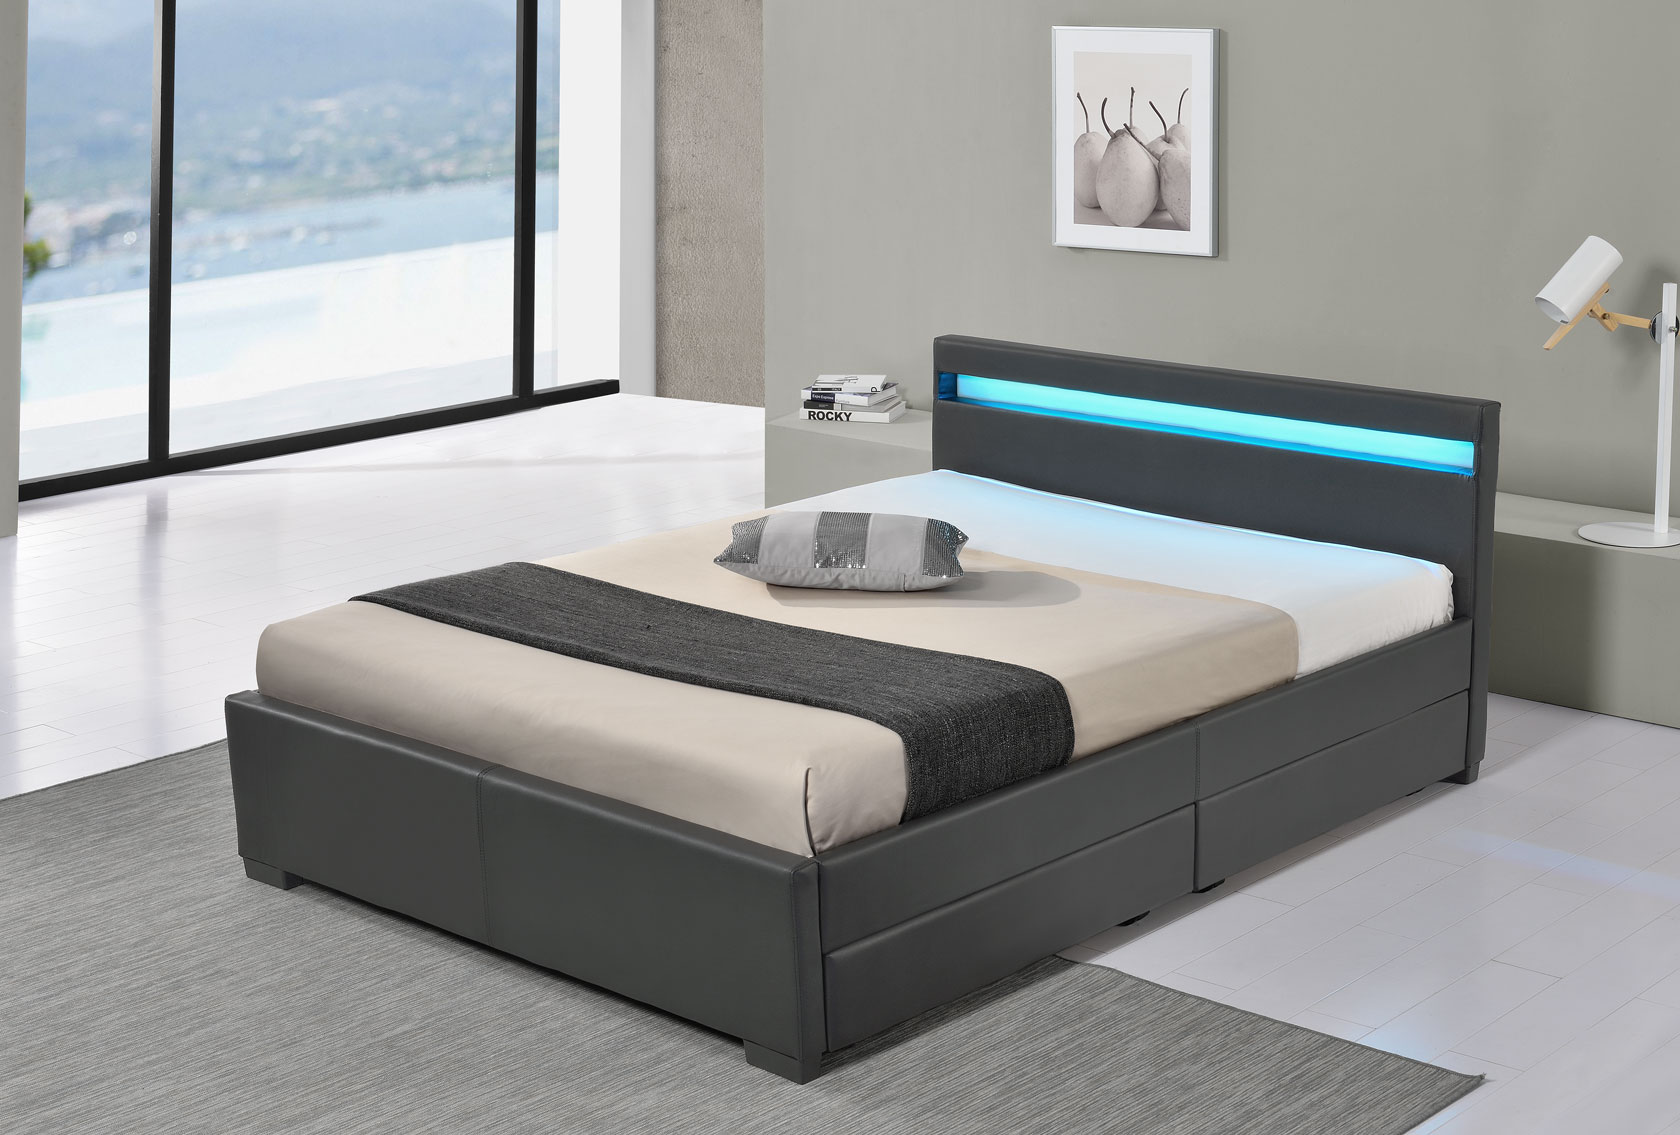 led bett lyon doppelbett polsterbett lattenrost kunstleder gestell bettkasten ebay. Black Bedroom Furniture Sets. Home Design Ideas